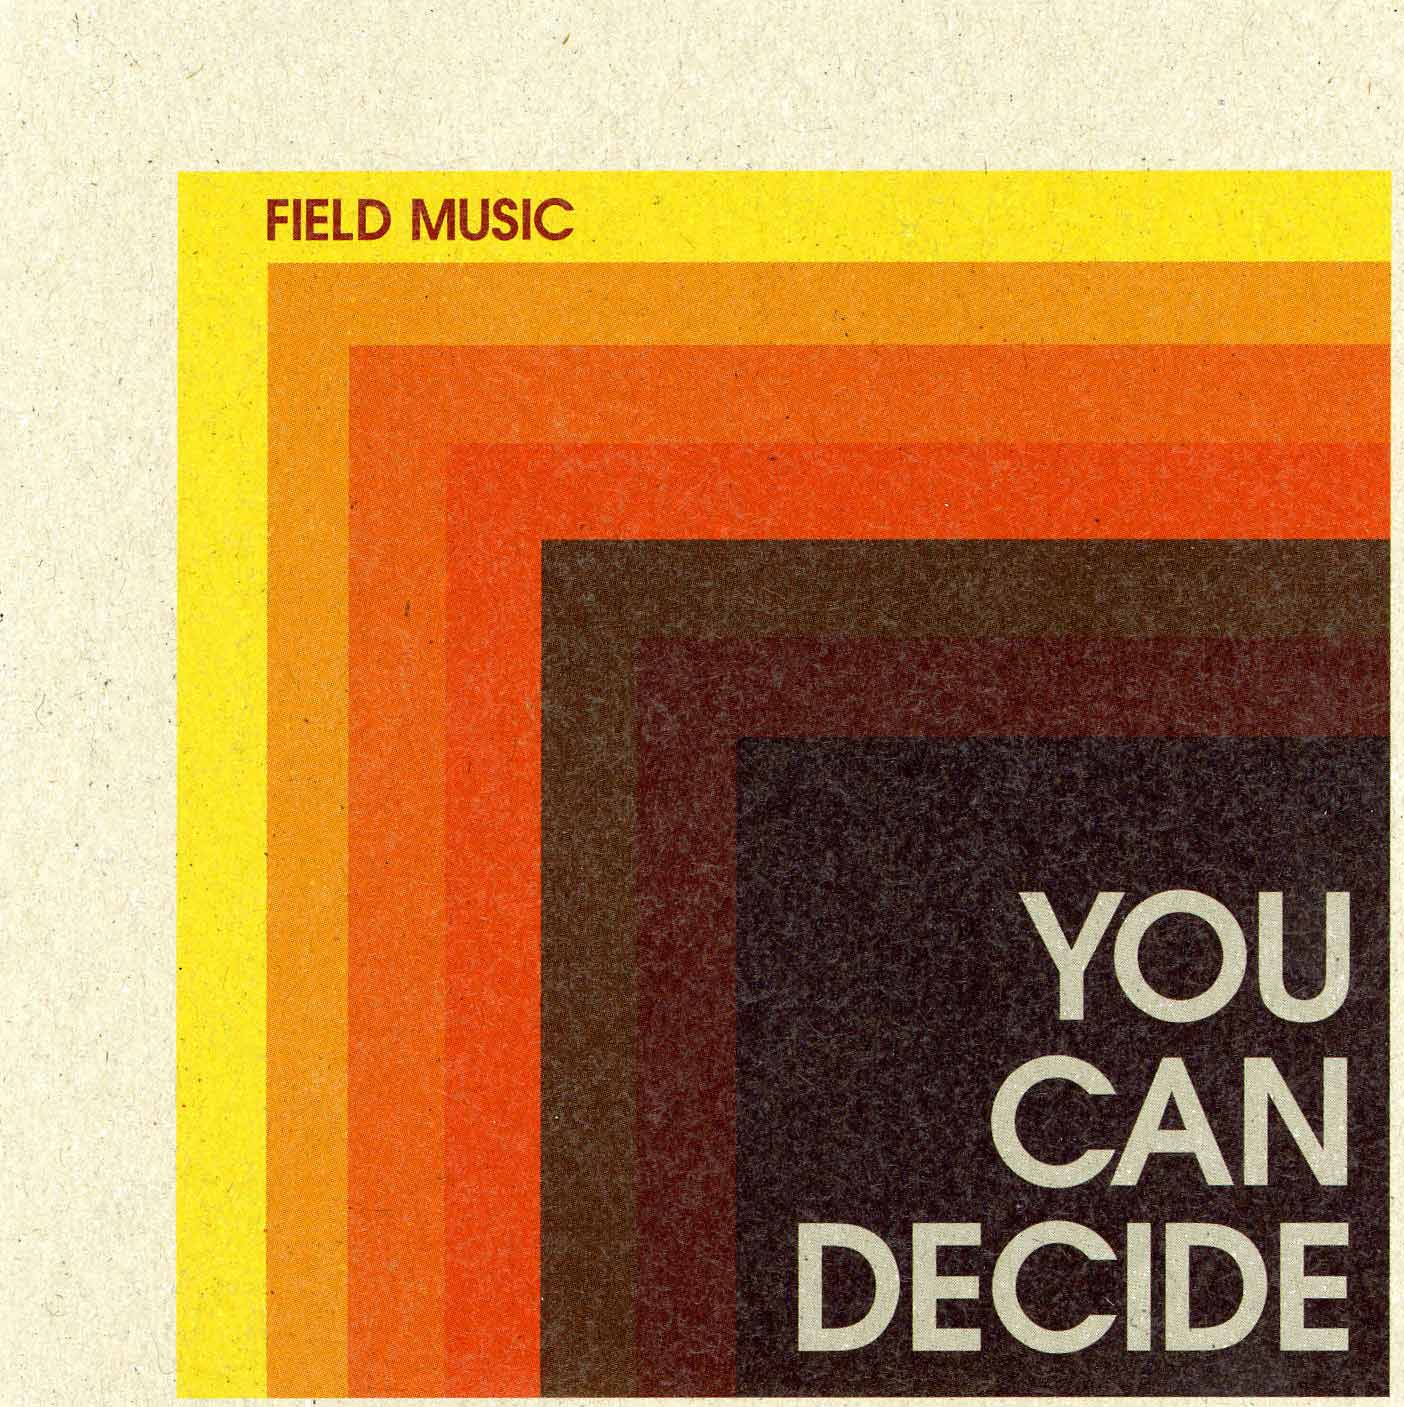 Field Music - You Can Decide